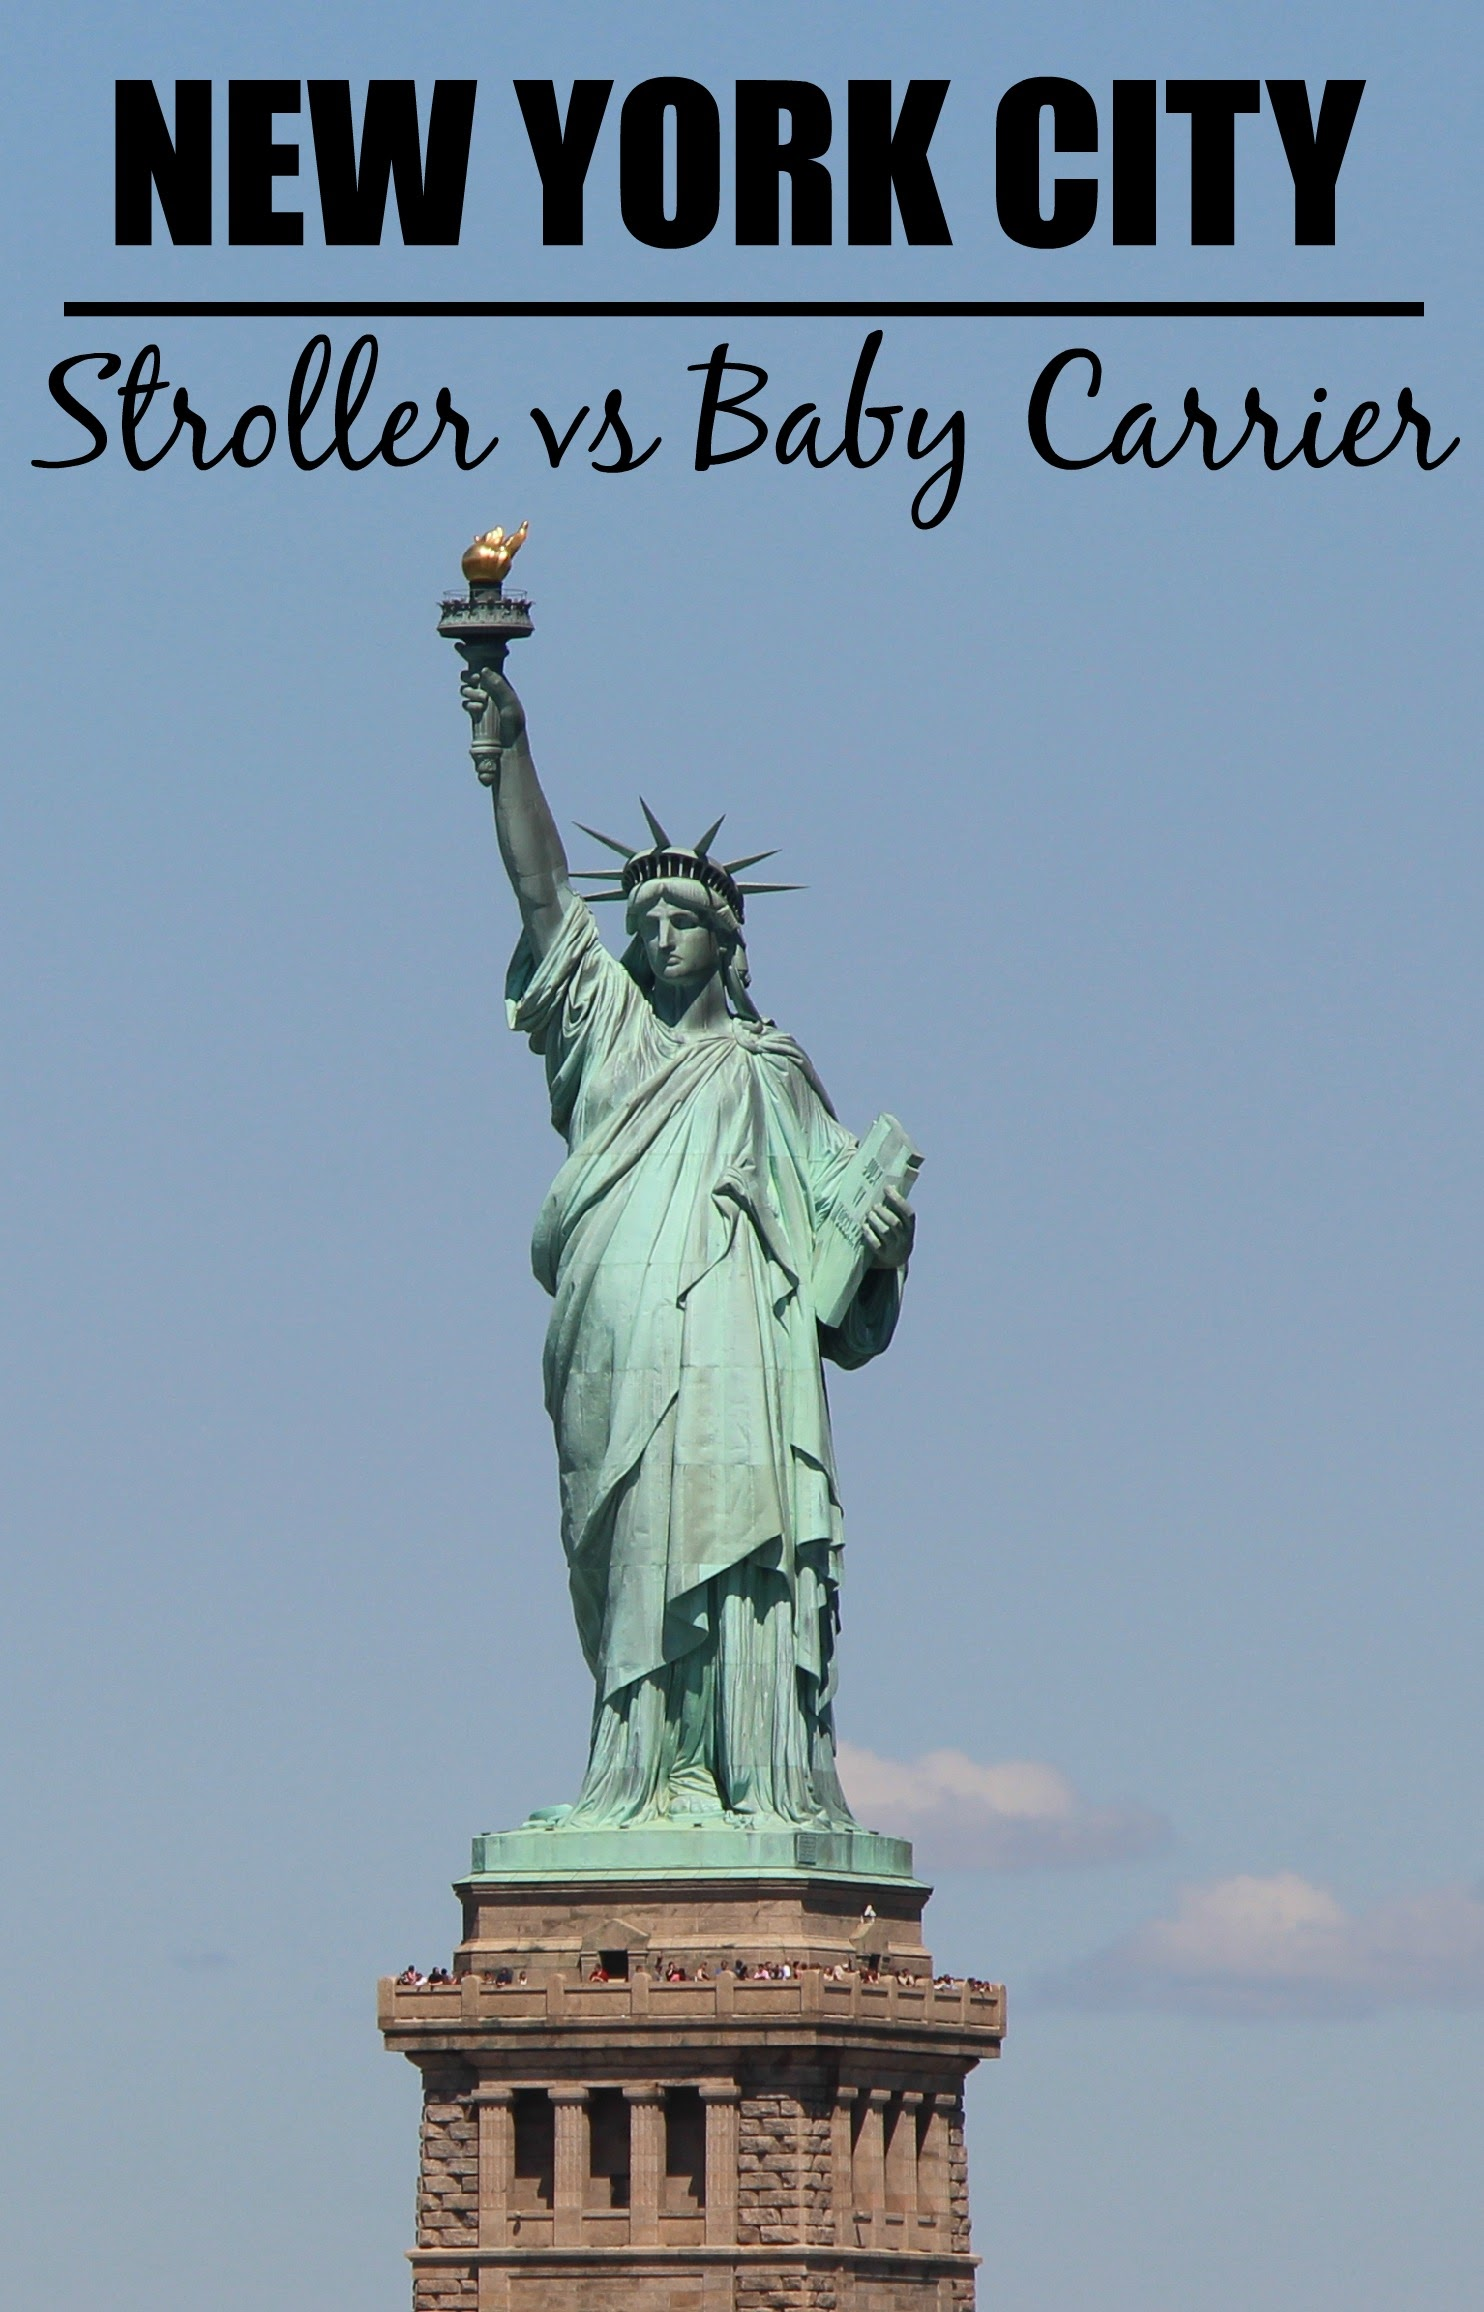 Travelling to NYC? Next in our series of Stroller vs Baby Carrier, we give our recommendations for the top 5 attractions in NYC. #travelwithbaby #nycwithbaby #babytravel #toddlertravel #traveltips #travelstroller #babycarrier #babywearing